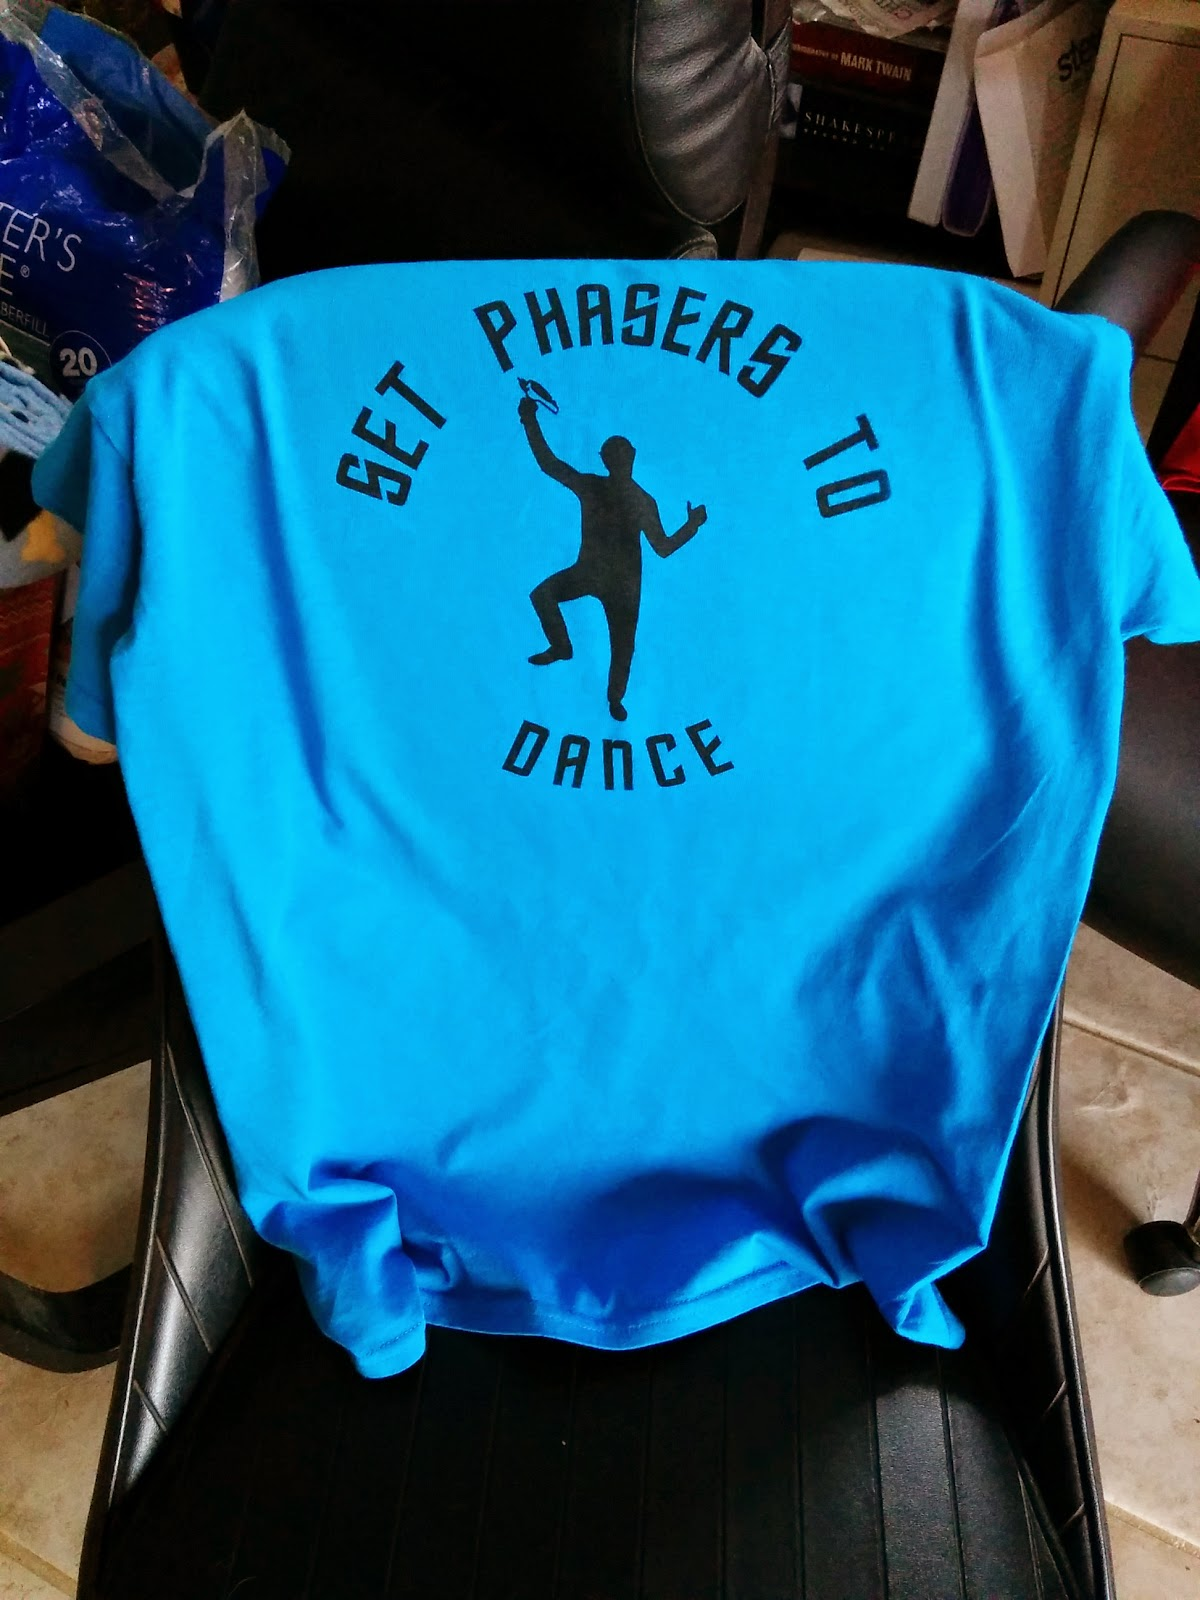 screen printed t-shirt set phasers to dance star trek